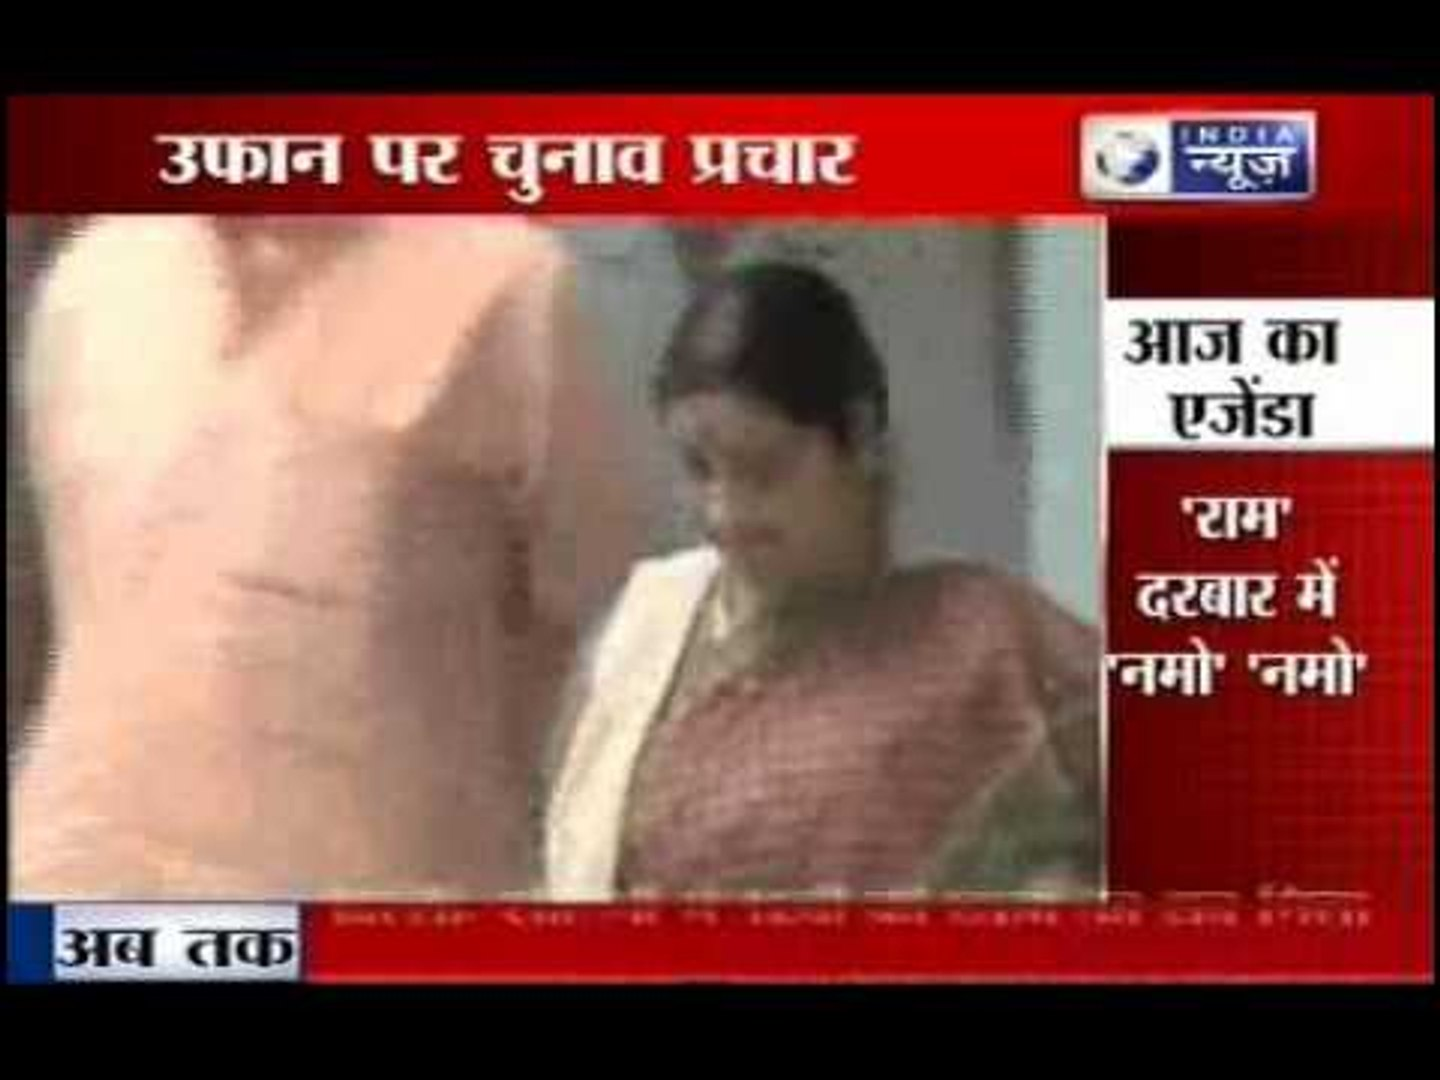 India News: Tsunami of Election propaganda